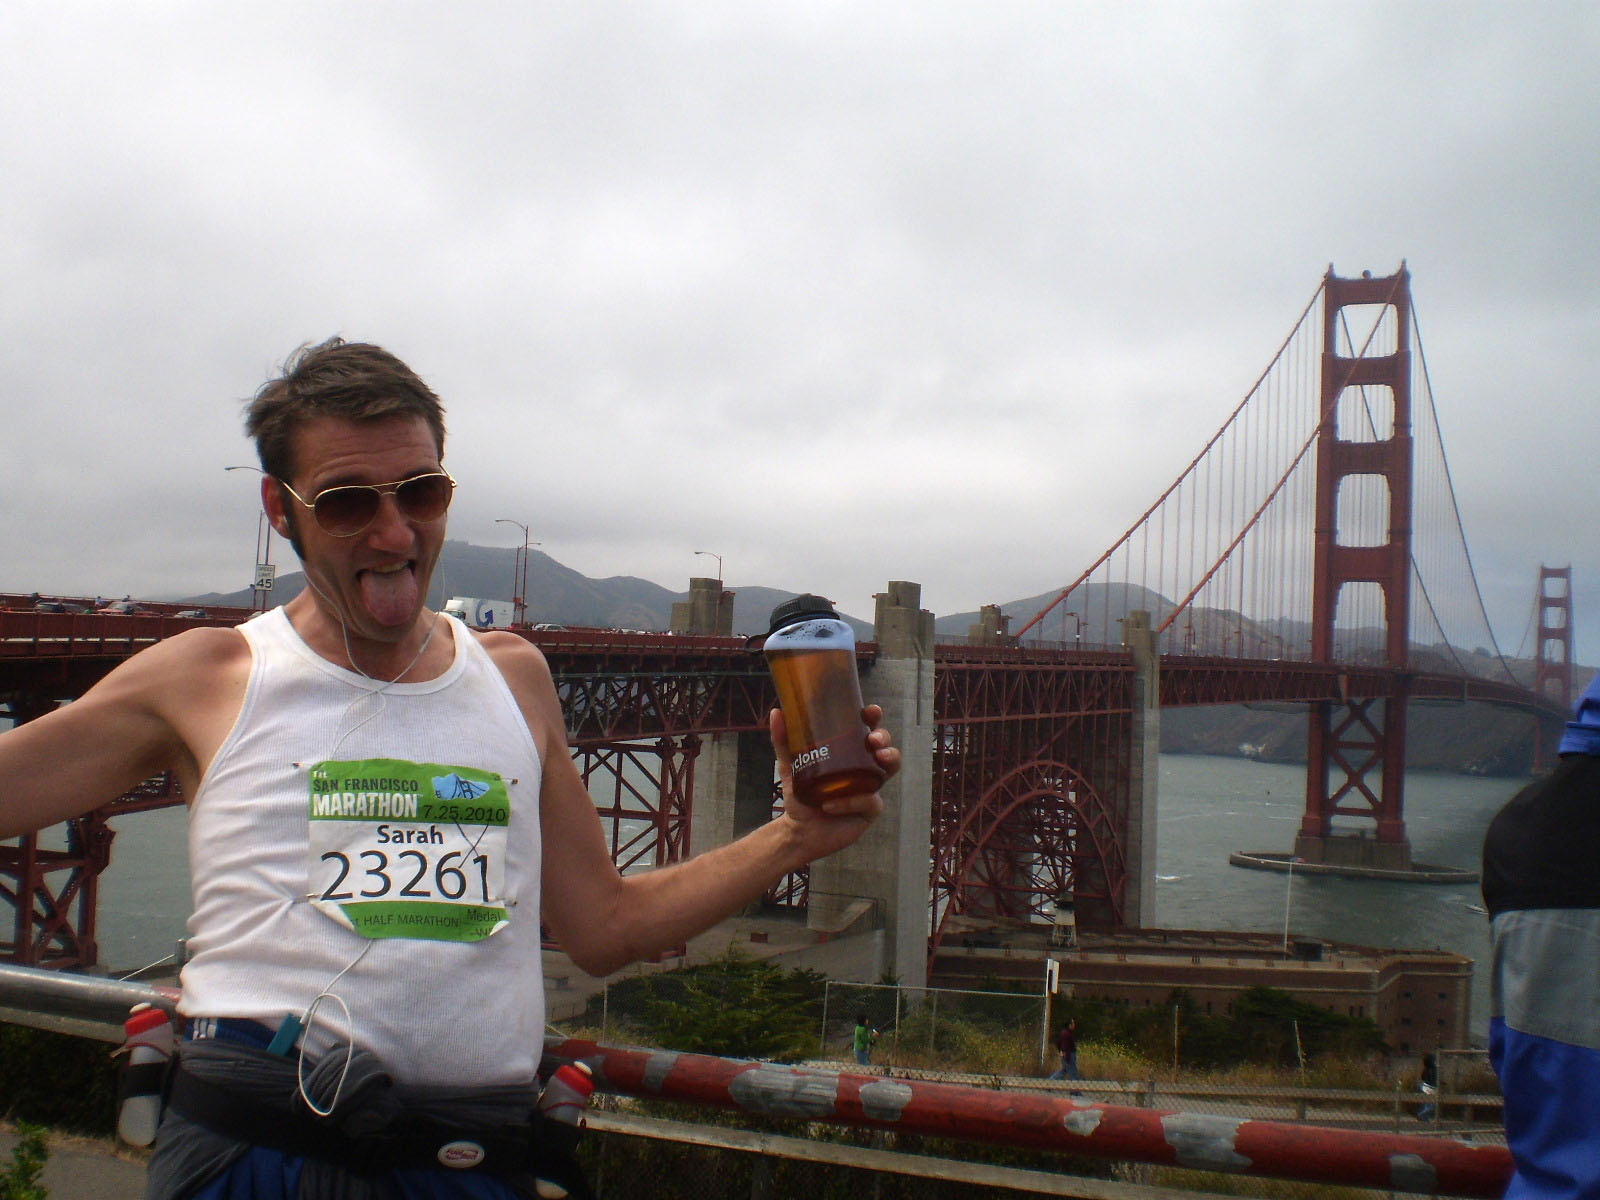 Drunken half marathon runner Joe Kukura approaching the Golden Gate Bridge during the San Francisco Half Marathon where he consumed 13 beers in 13.1 miles on July 31, 2010 in San Francisco, California. The beer mile has recently become a pursuit for serious runners. (Photo by Barcroft USA / Getty Images)